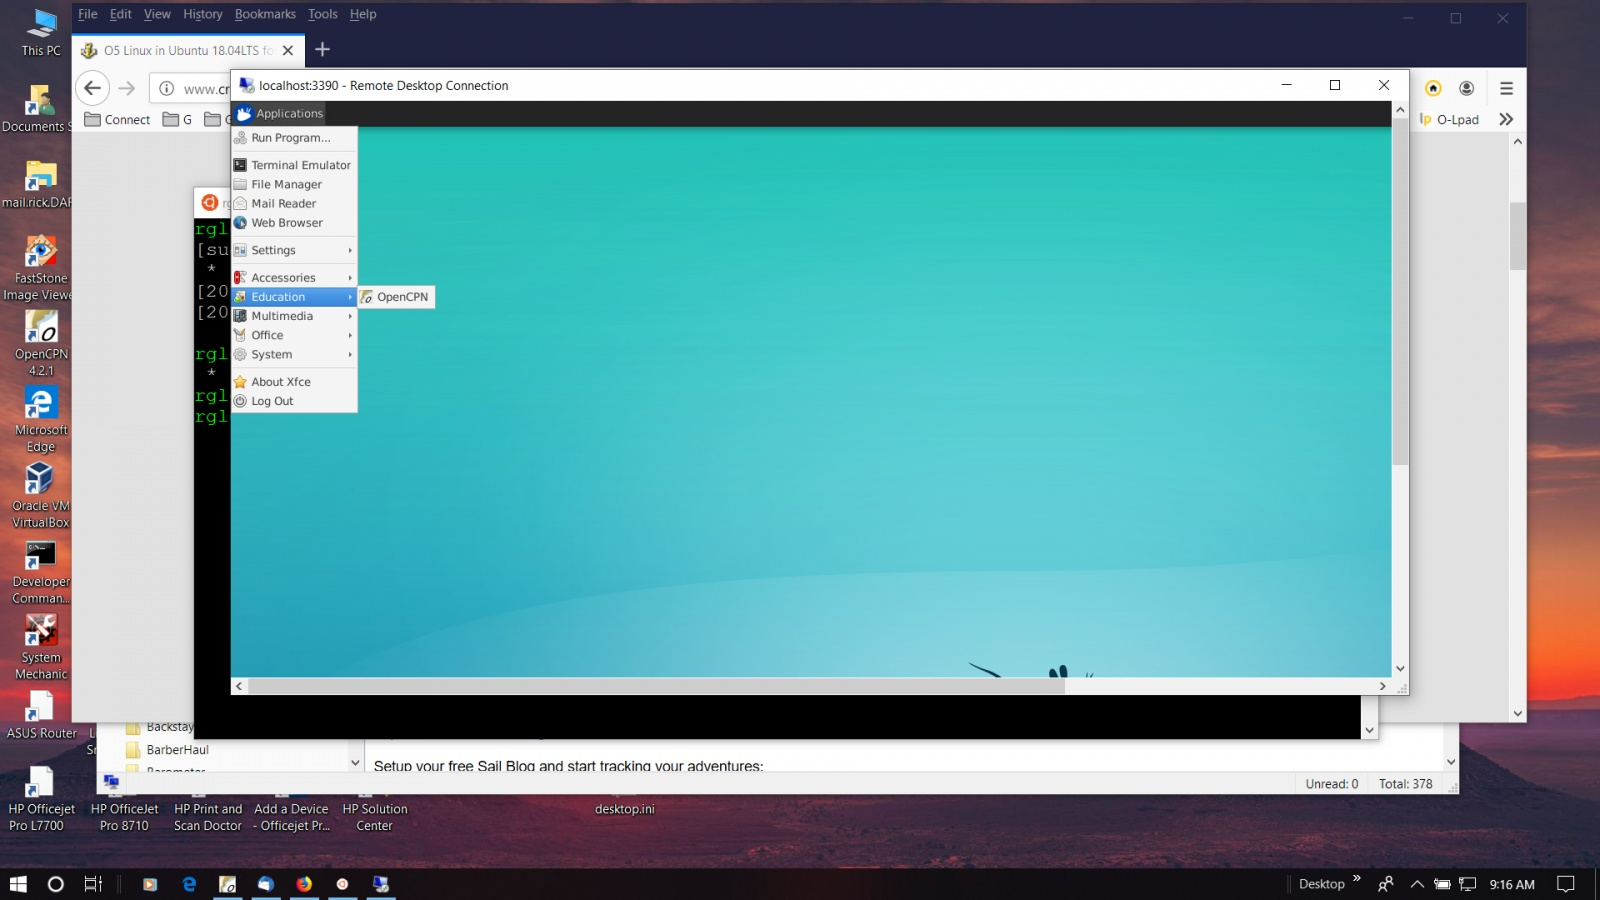 O5 Linux in Ubuntu 18 04LTS for Windows10 - Page 3 - Cruisers